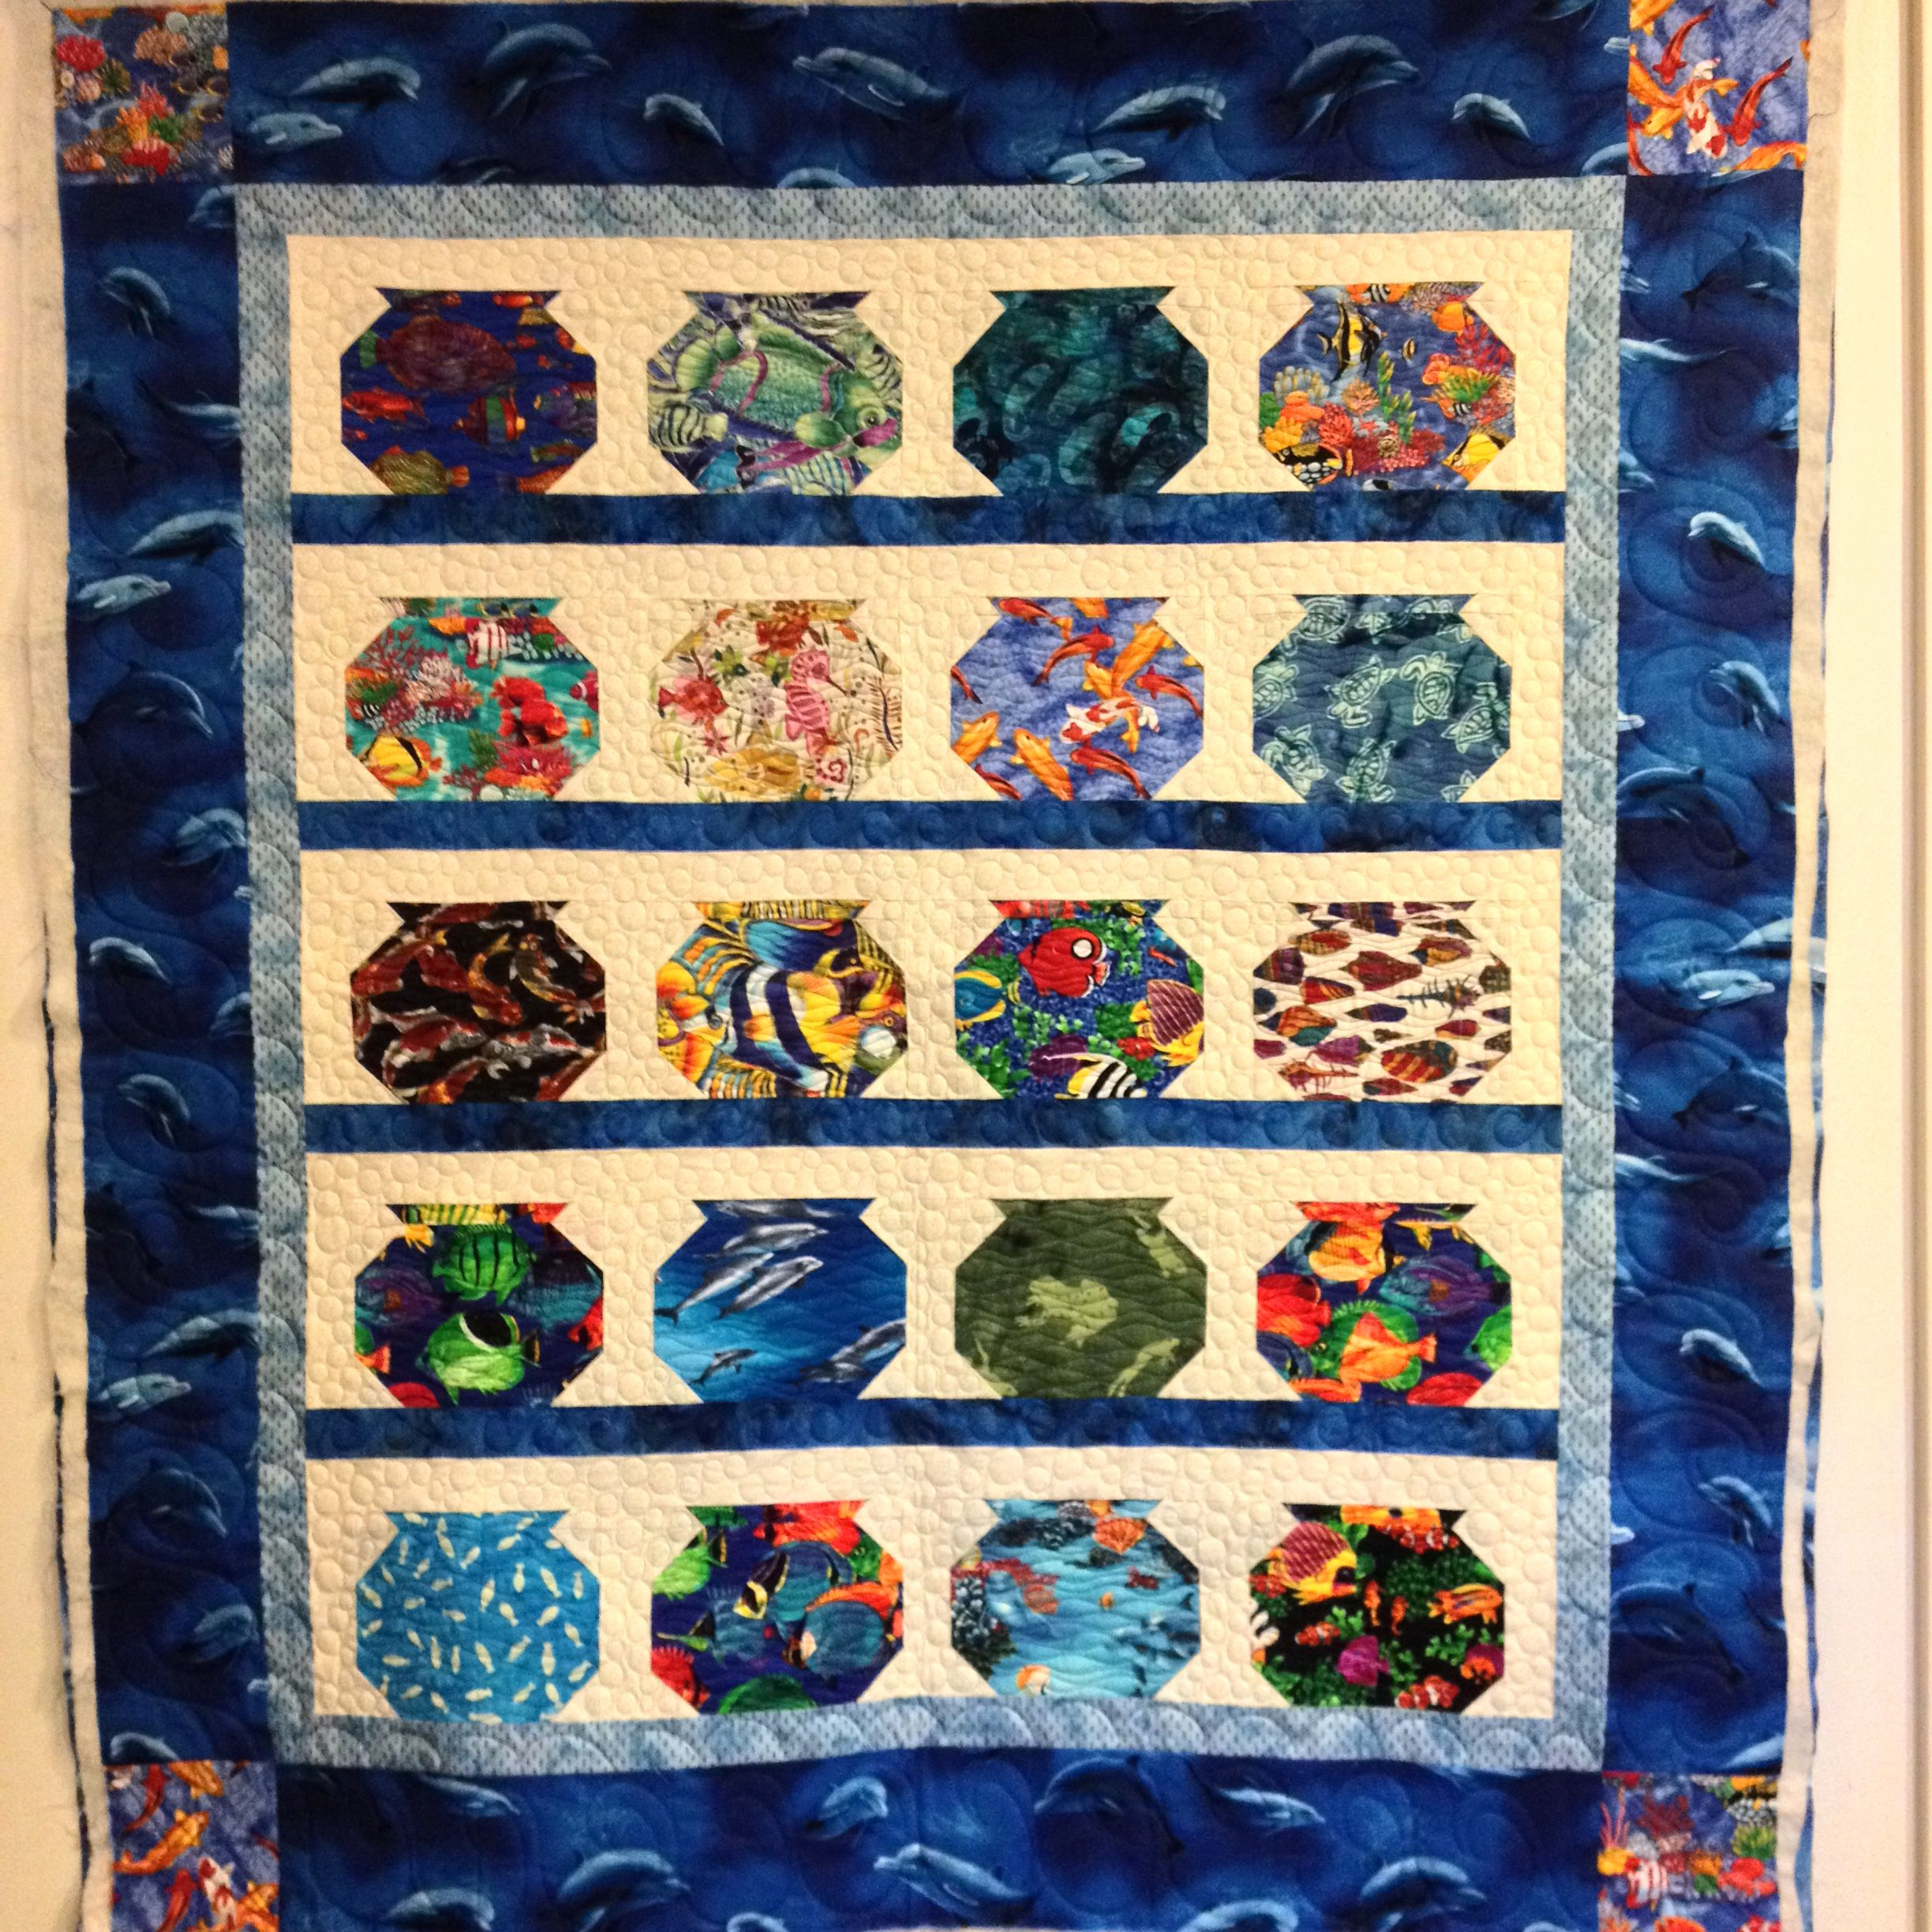 Fishbowl Quilt By Quilted Connection